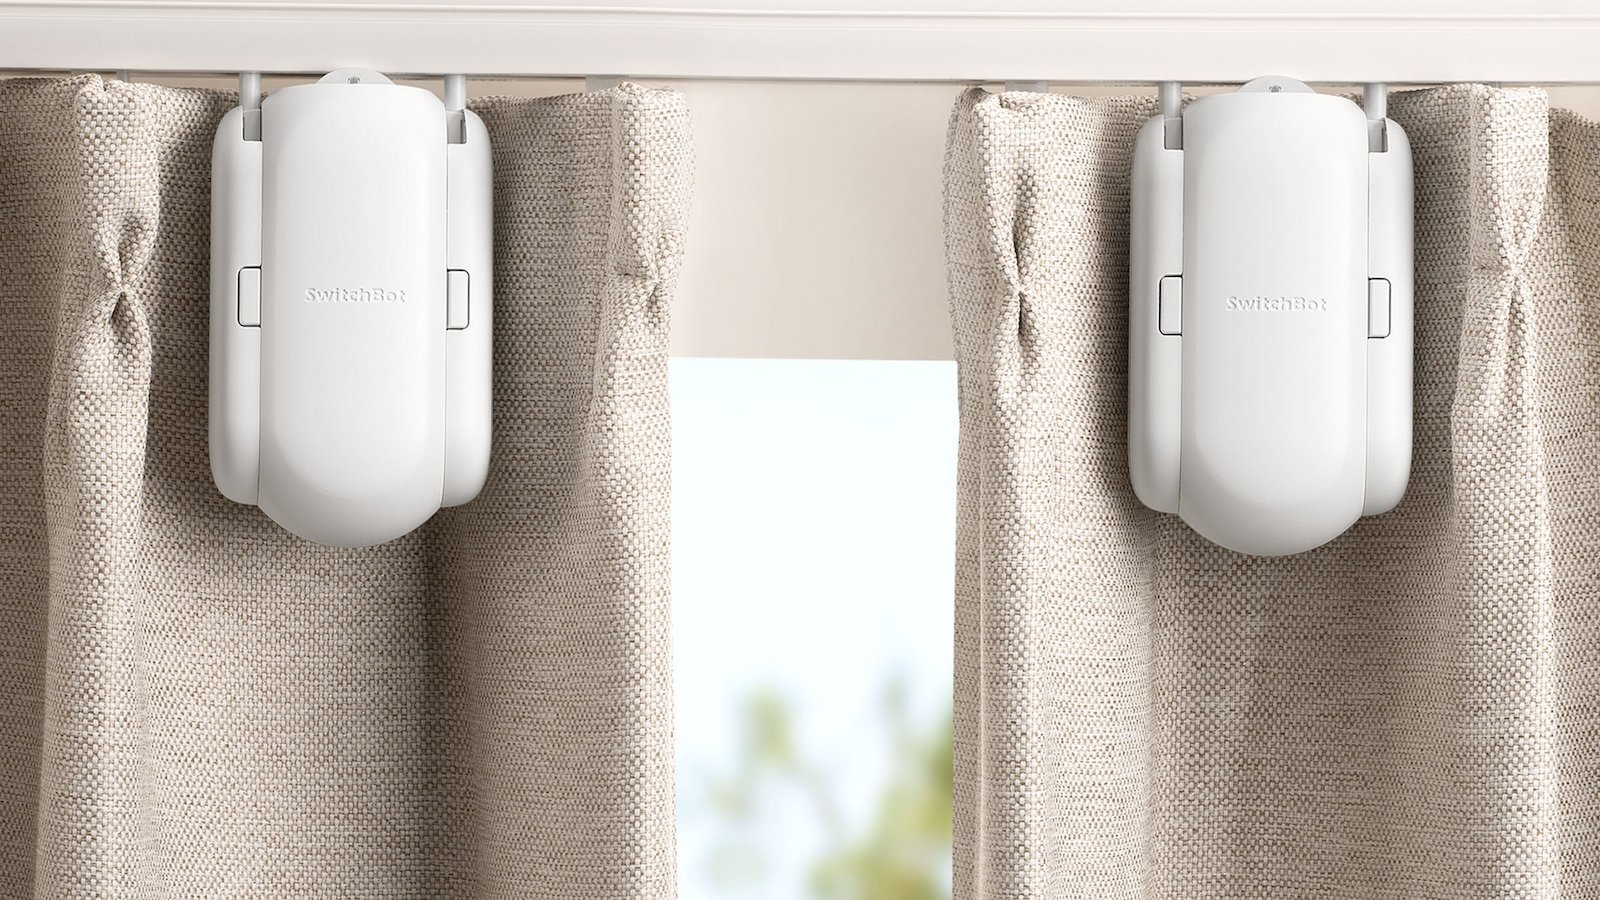 SwitchBot Smart Curtain